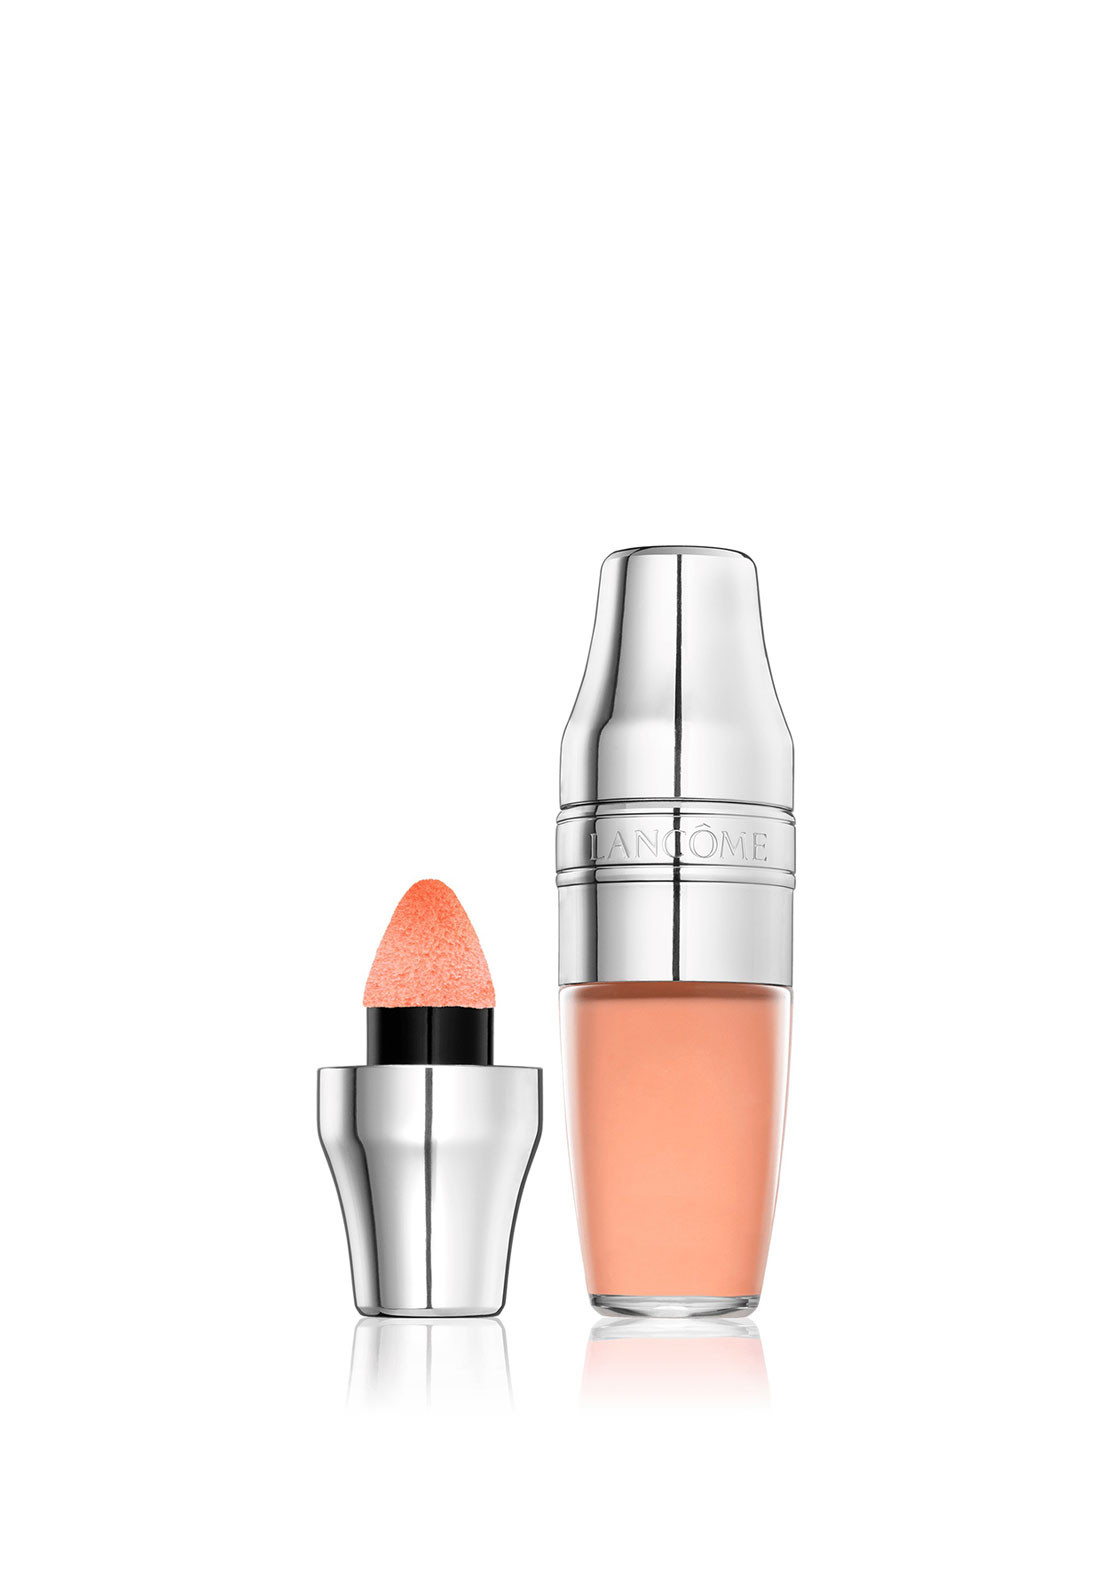 Lancome Juicy Shaker, Show Me The Honey